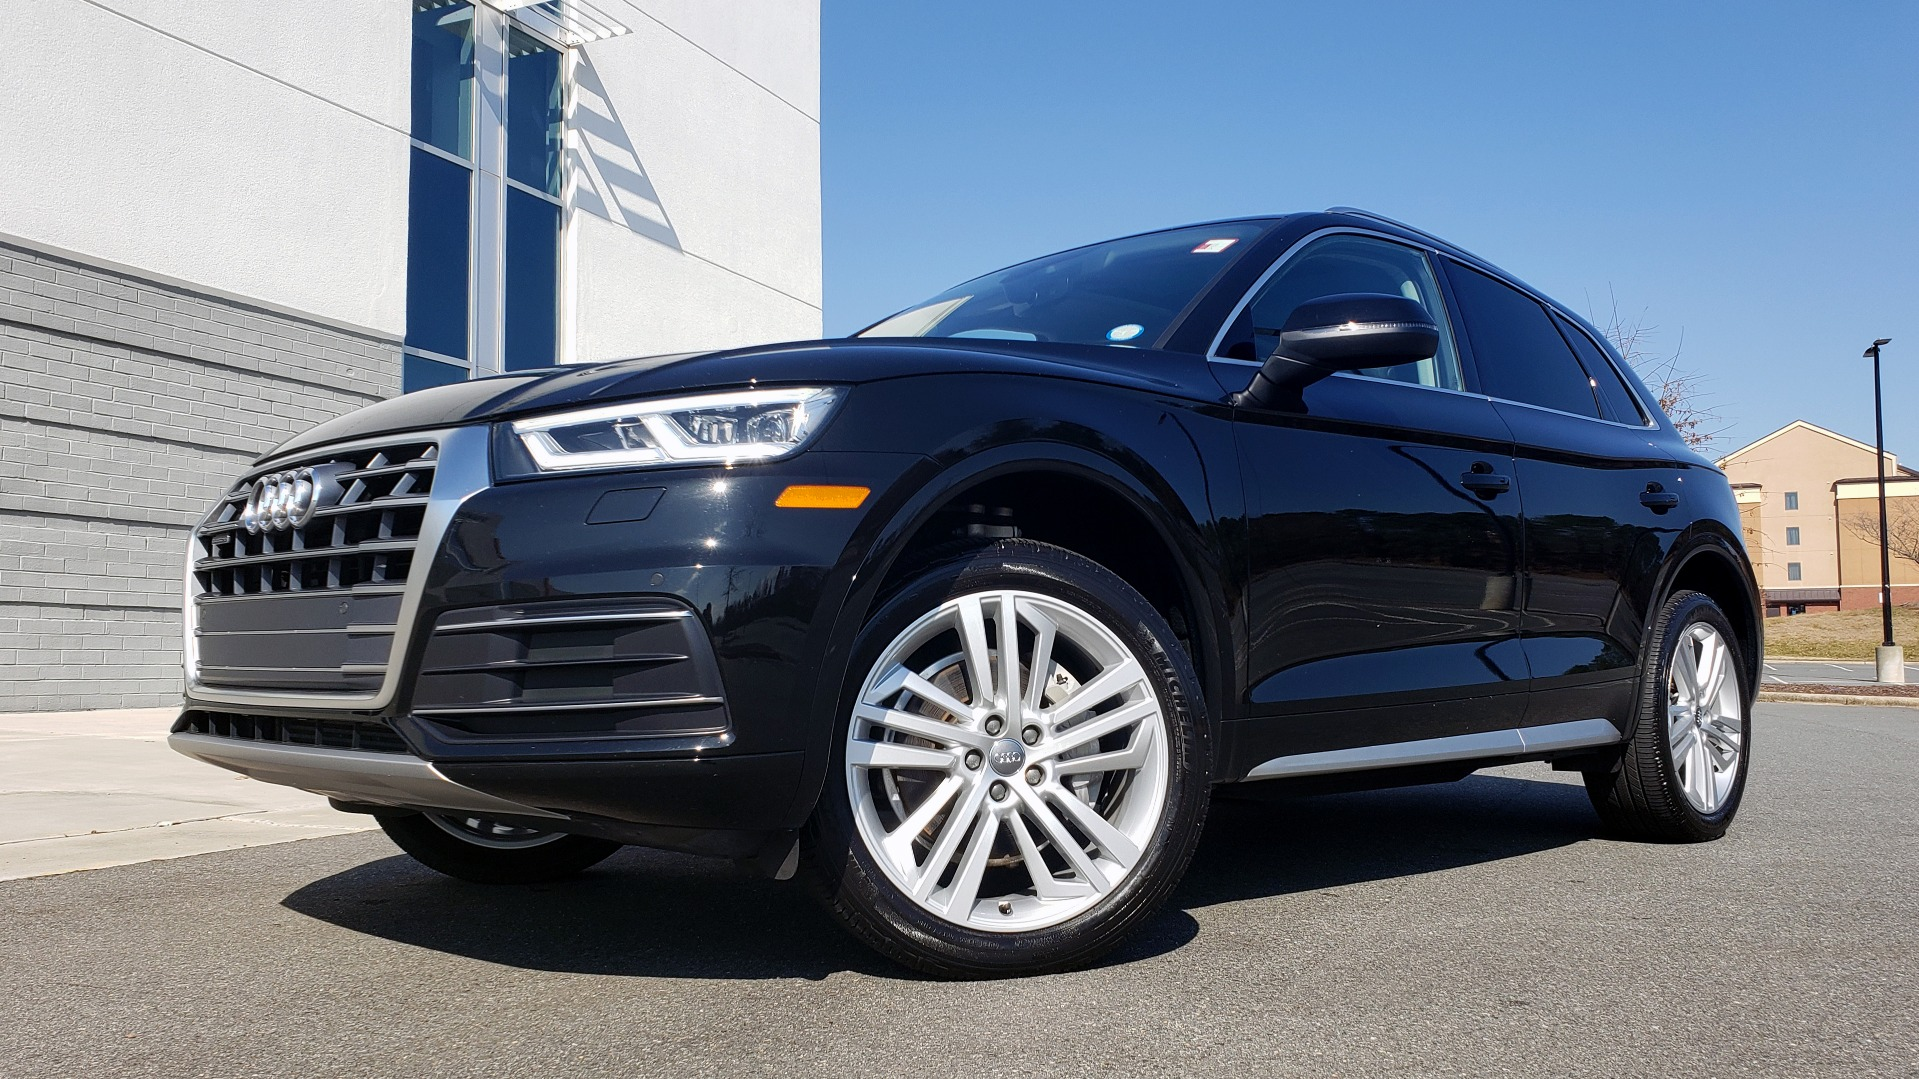 Used 2018 Audi Q5 PREMIUM PLUS / NAV / PANO-ROOF / CLD WTHR / REARVIEW for sale $30,435 at Formula Imports in Charlotte NC 28227 1